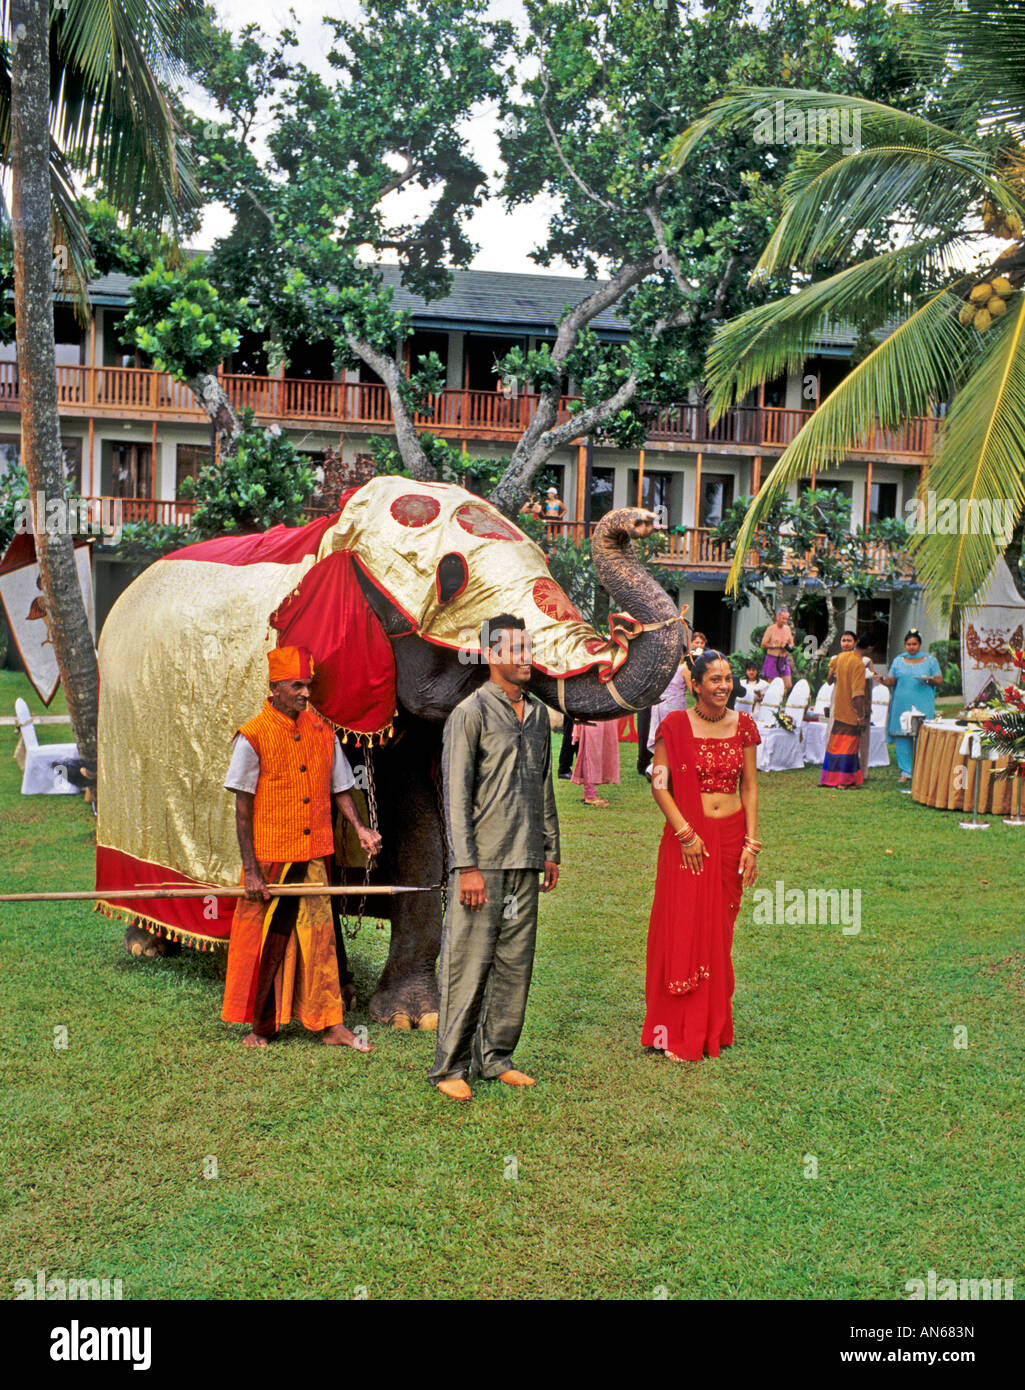 Inspiring Elephant In Ceremonial Dress At A Wedding In Bentota Beach Hotel  With Licious Elephant In Ceremonial Dress At A Wedding In Bentota Beach Hotel Garden Sri  Lanka With Bride And Groom With Appealing Garden Obelisks Also Secret Garden Preston In Addition Train Show Botanical Garden And Dog Garden Ornaments Uk As Well As Grow Your Own Herb Garden Additionally Wholesale Garden Benches From Alamycom With   Licious Elephant In Ceremonial Dress At A Wedding In Bentota Beach Hotel  With Appealing Elephant In Ceremonial Dress At A Wedding In Bentota Beach Hotel Garden Sri  Lanka With Bride And Groom And Inspiring Garden Obelisks Also Secret Garden Preston In Addition Train Show Botanical Garden From Alamycom